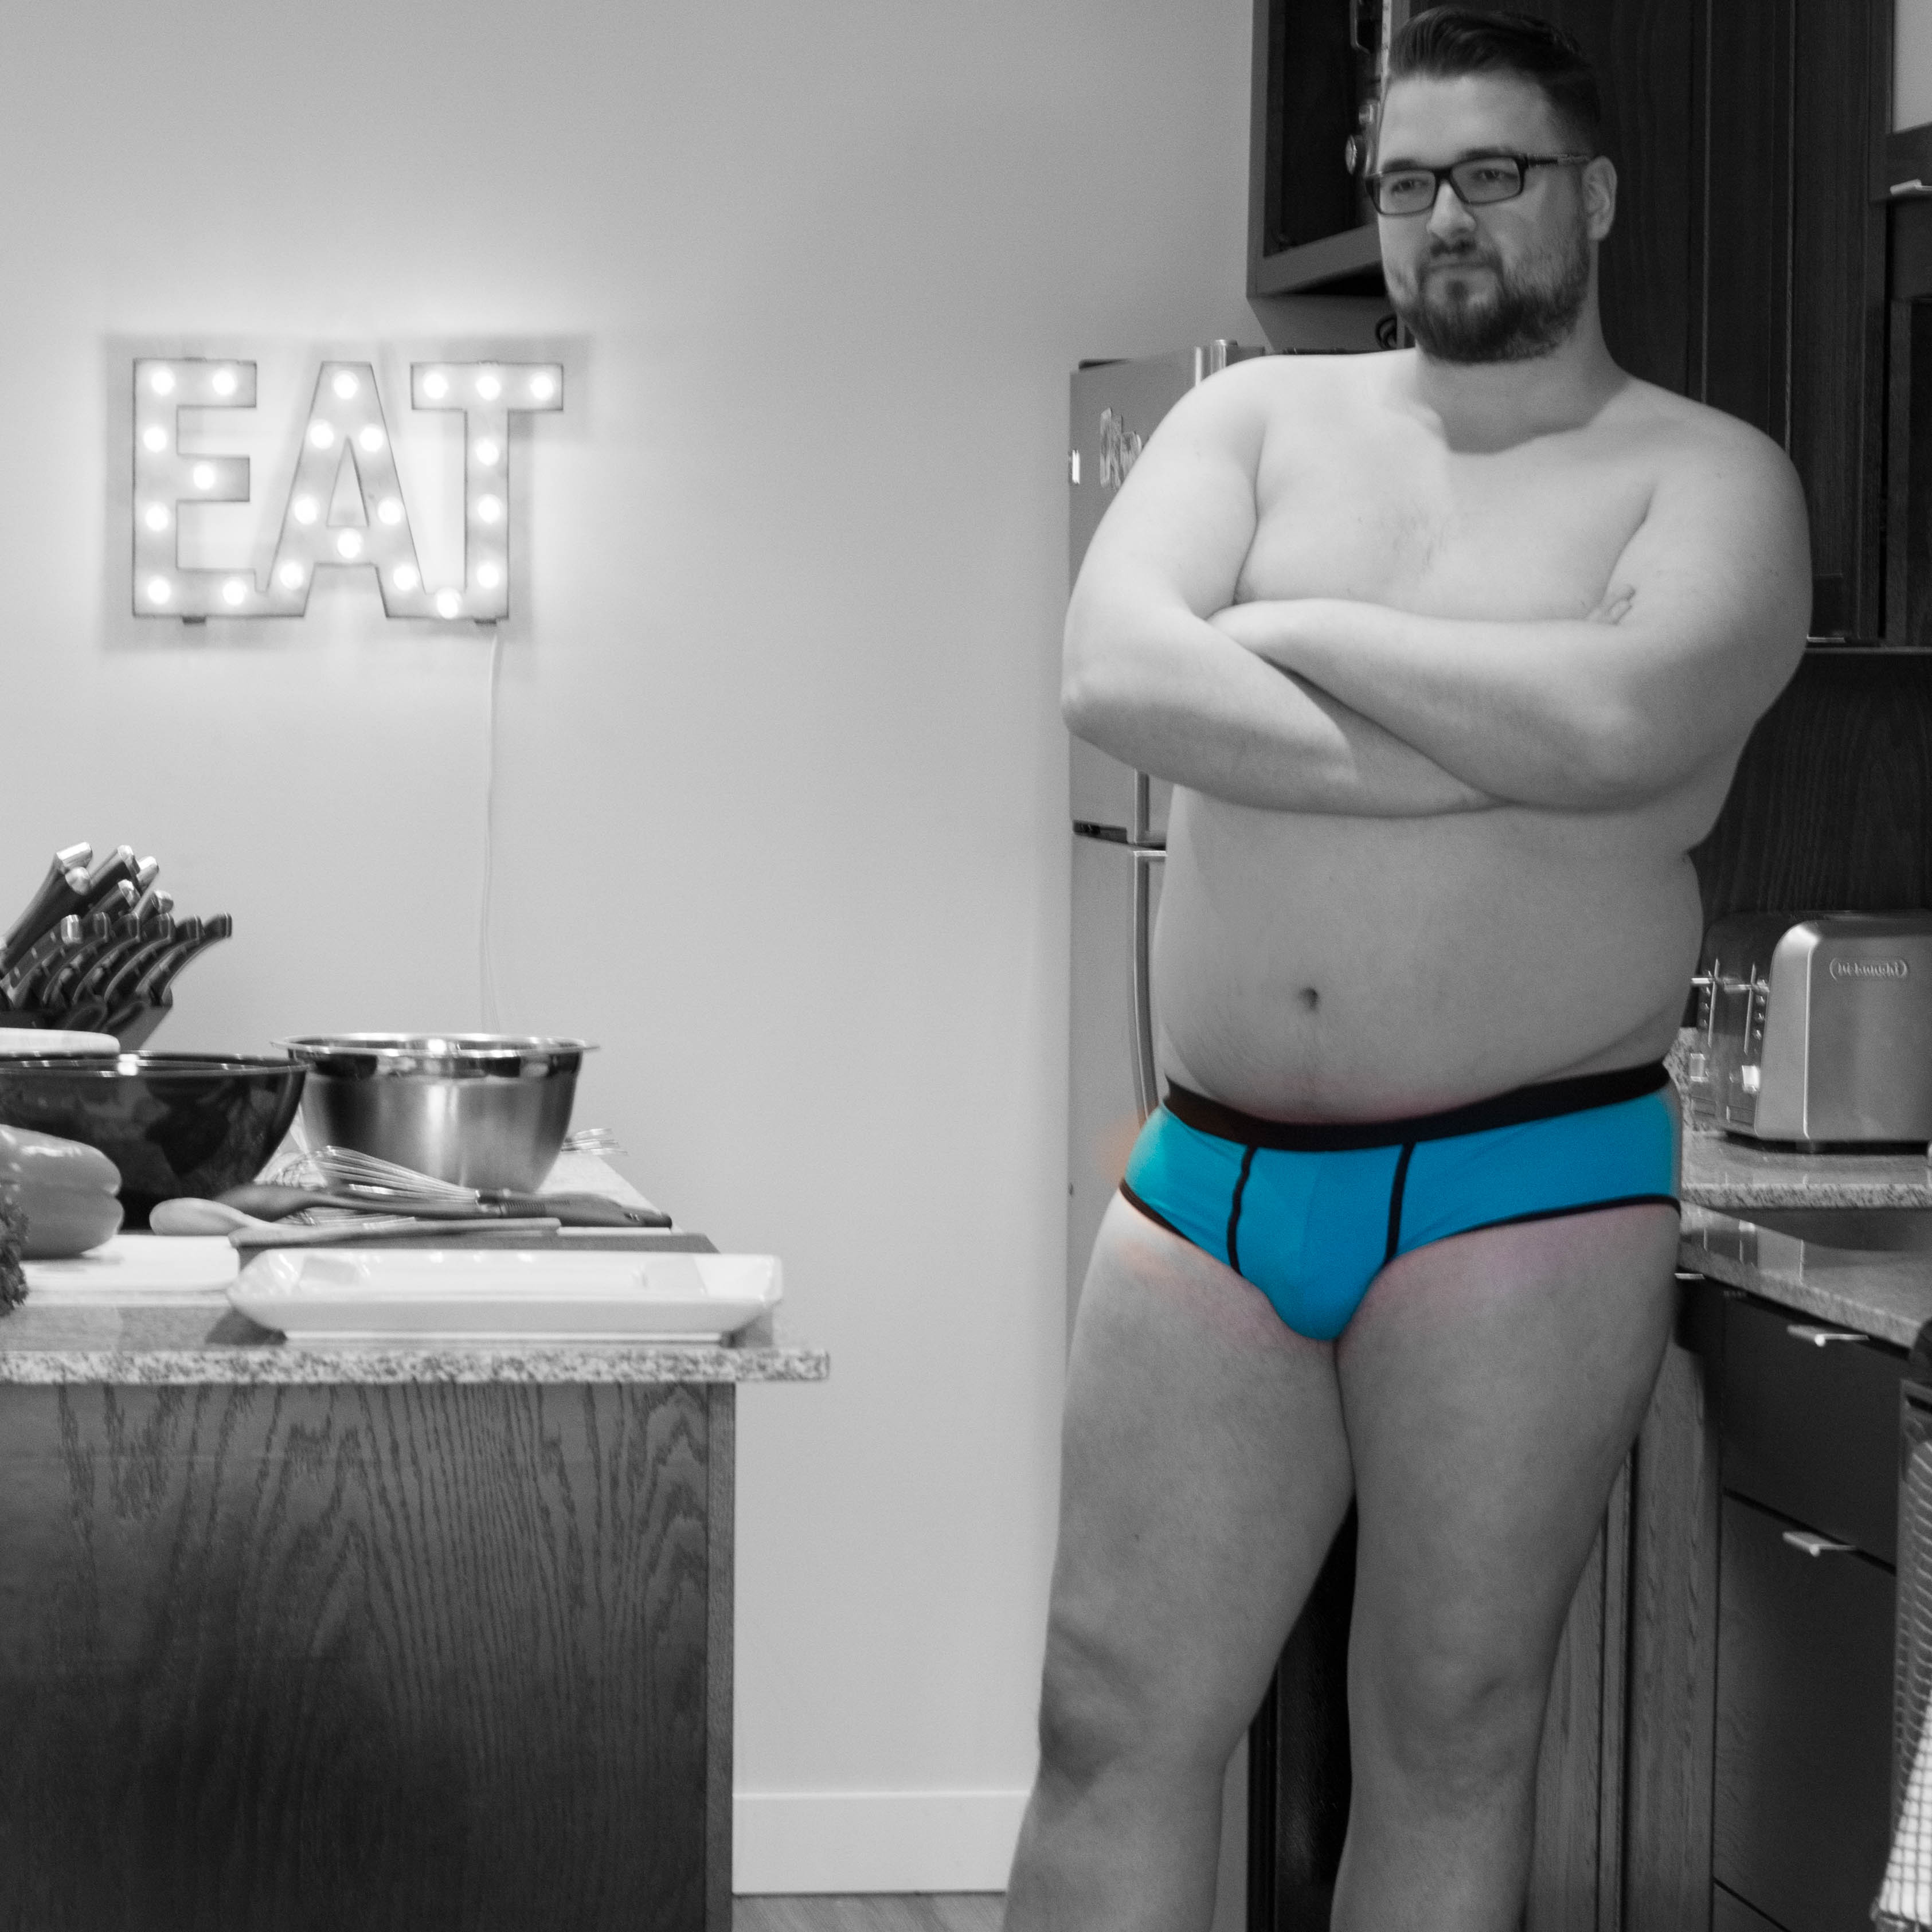 Bearskn is real underwear for real guys